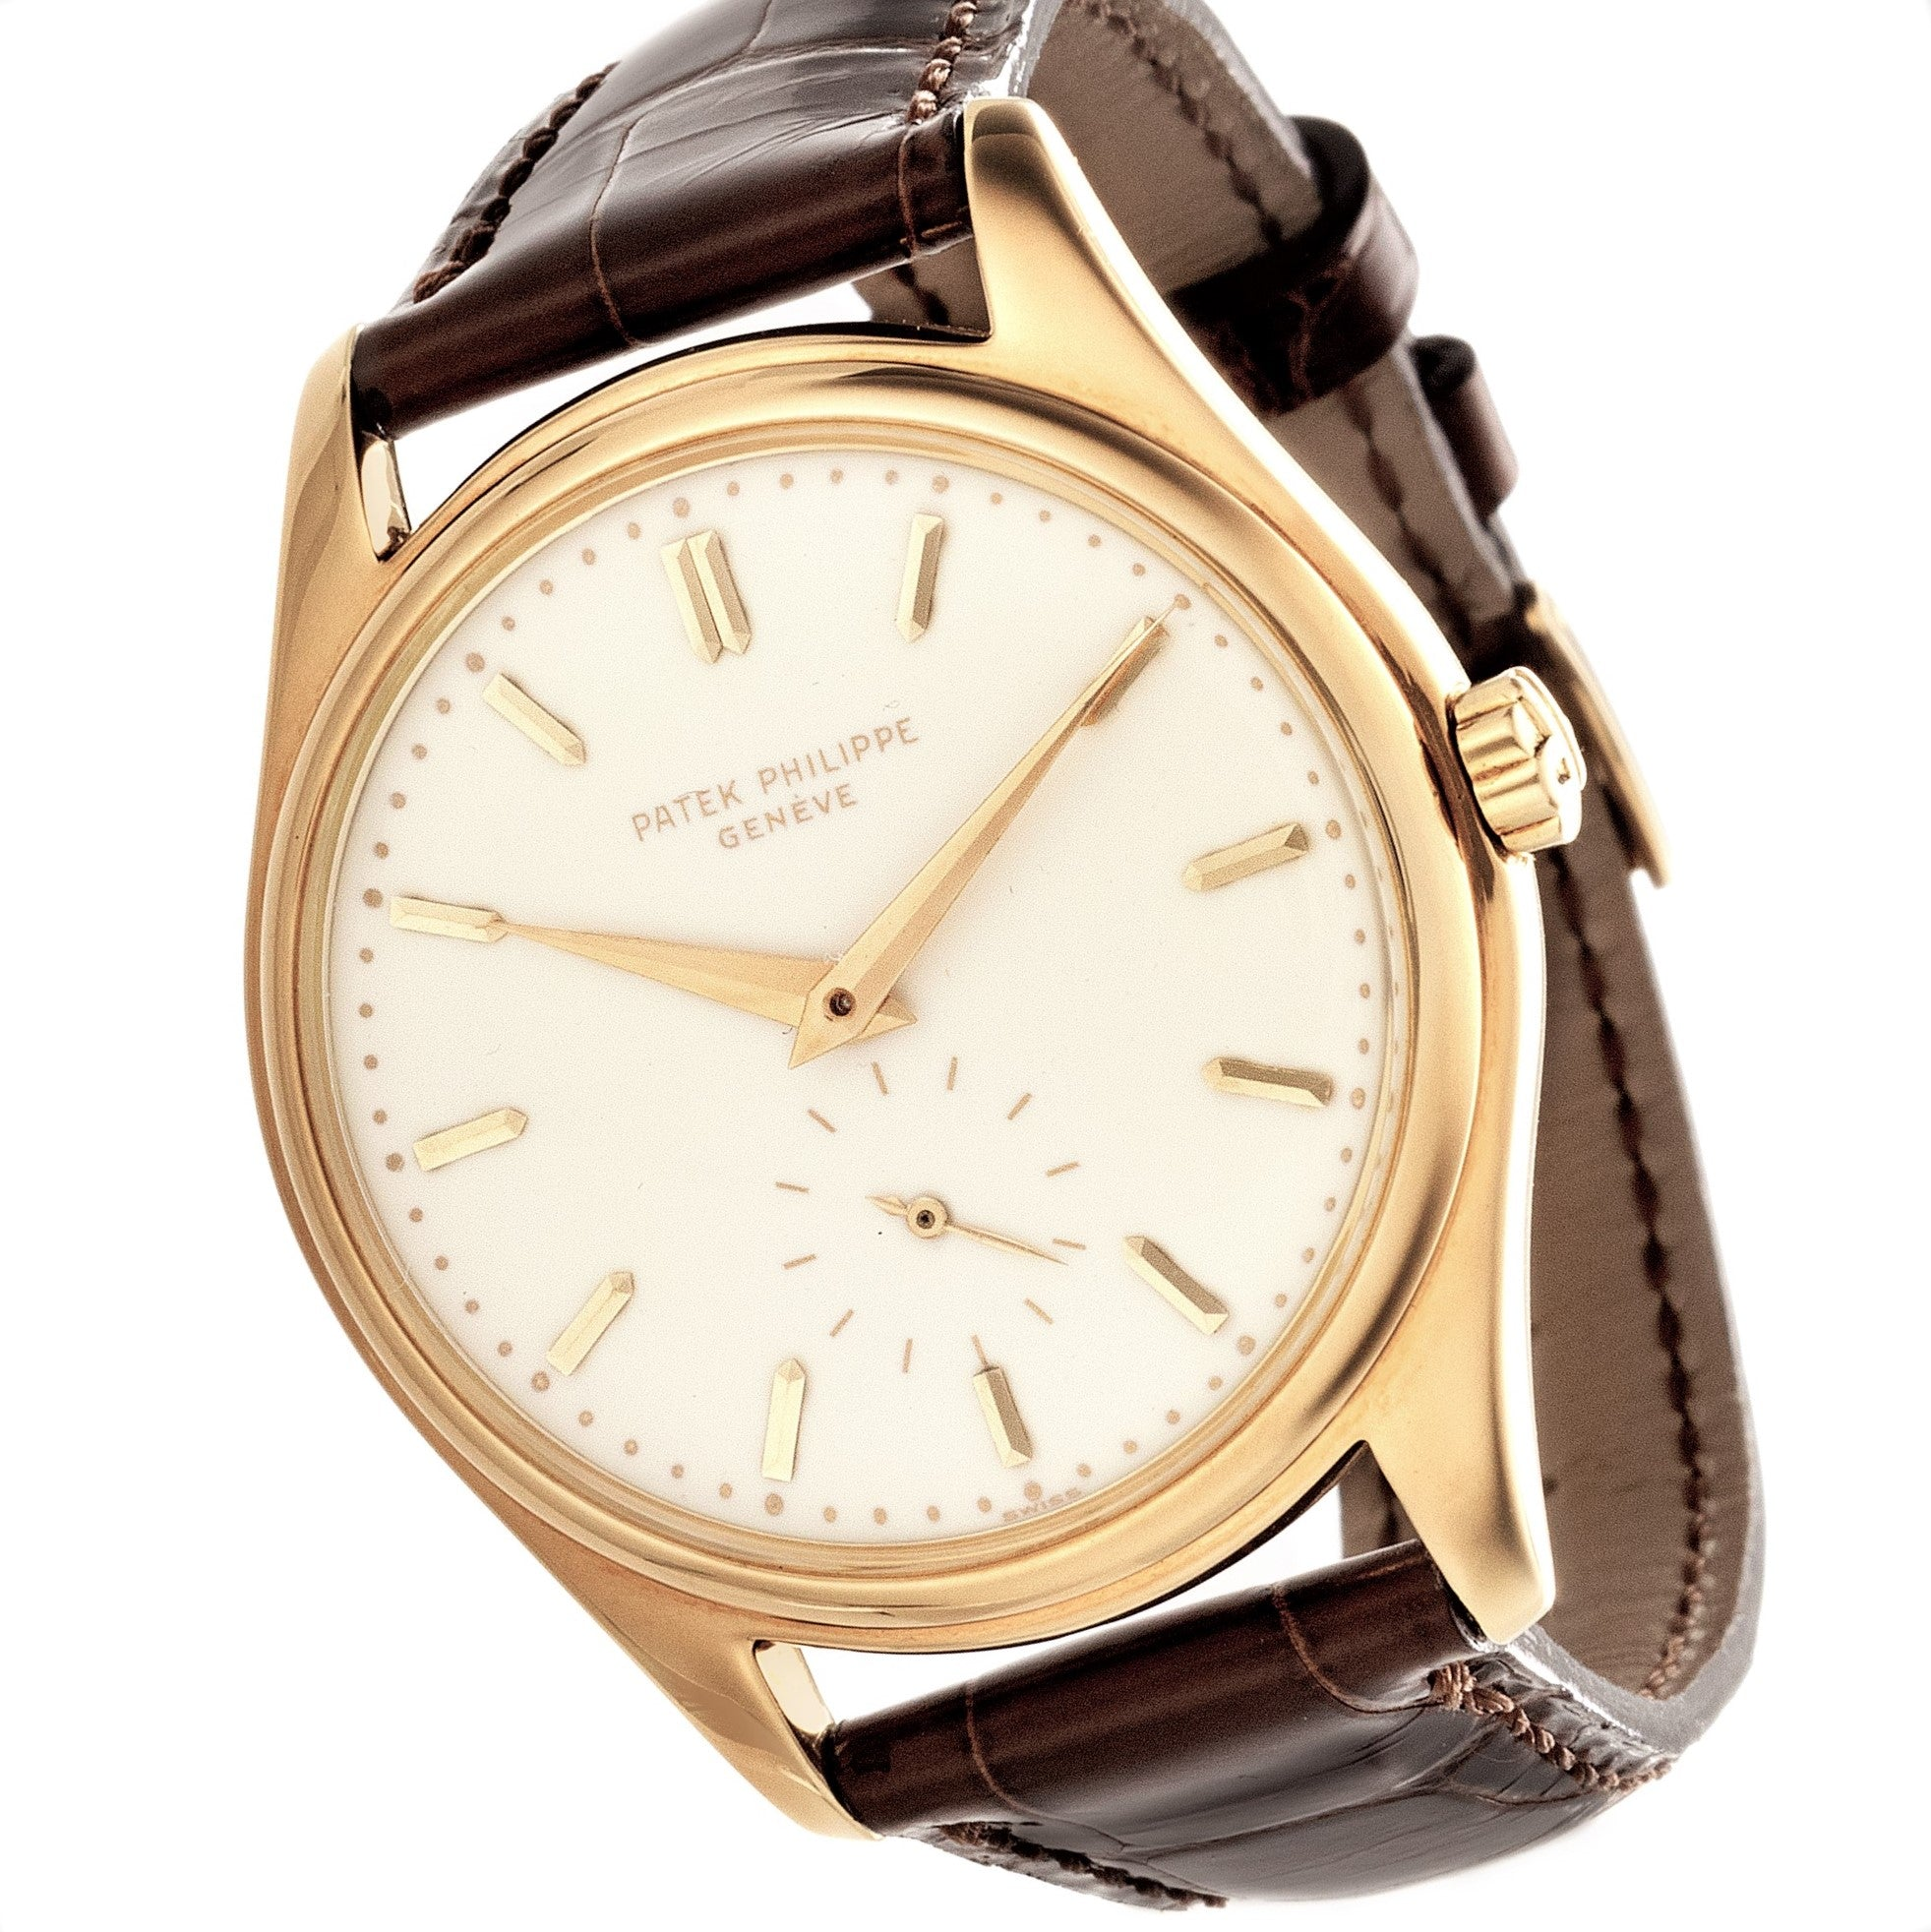 Patek Philippe 2526J 1st Series Automatic Calatrava Watch